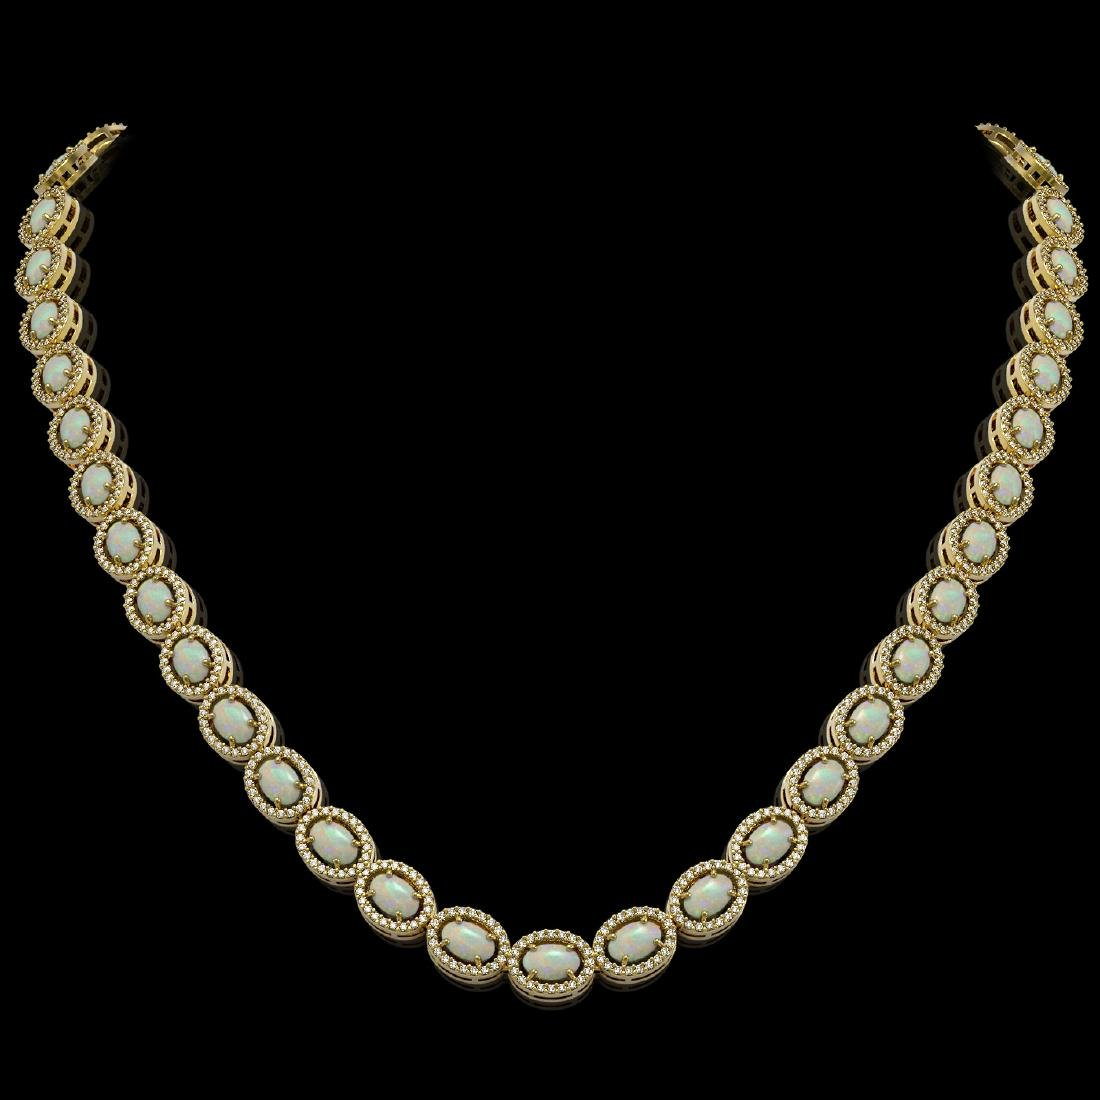 21.21 CTW Opal & Diamond Halo Necklace 10K Yellow Gold